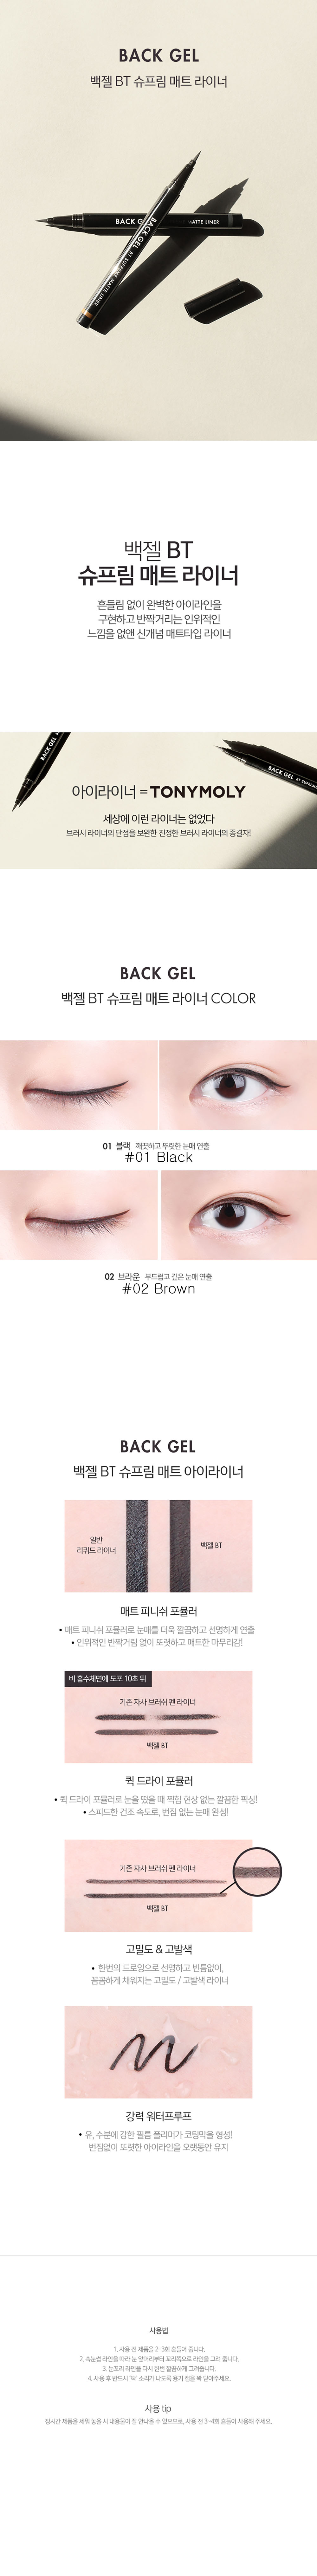 Index Of Jjj Image Cosmetics Tonymoly Tony Moly Berrianne Cream Back Gel Bt Supreme Matte Liner 1